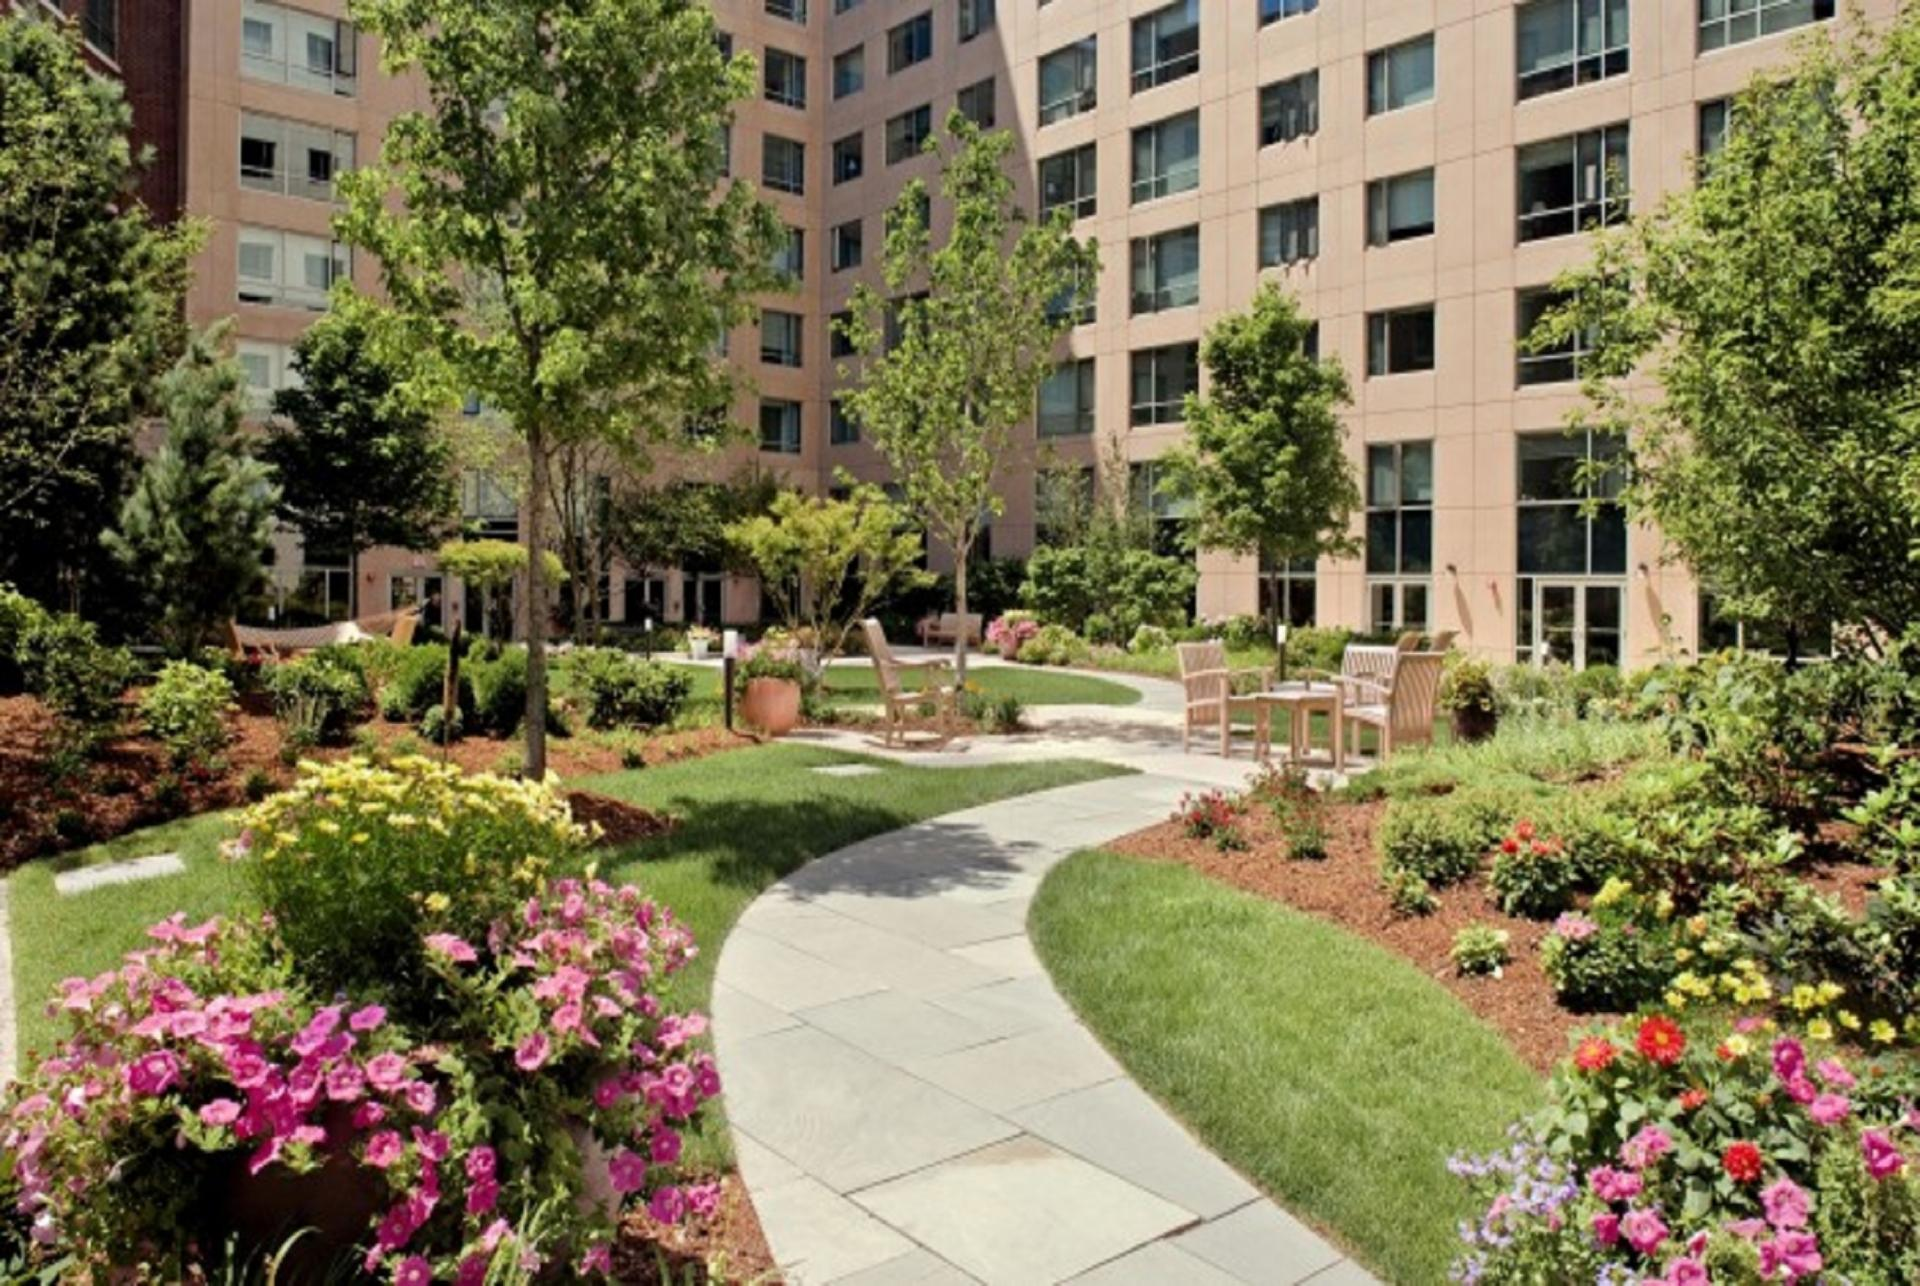 Gardens at Fenway Triangle Trilogy Apartments, Brookline, Boston